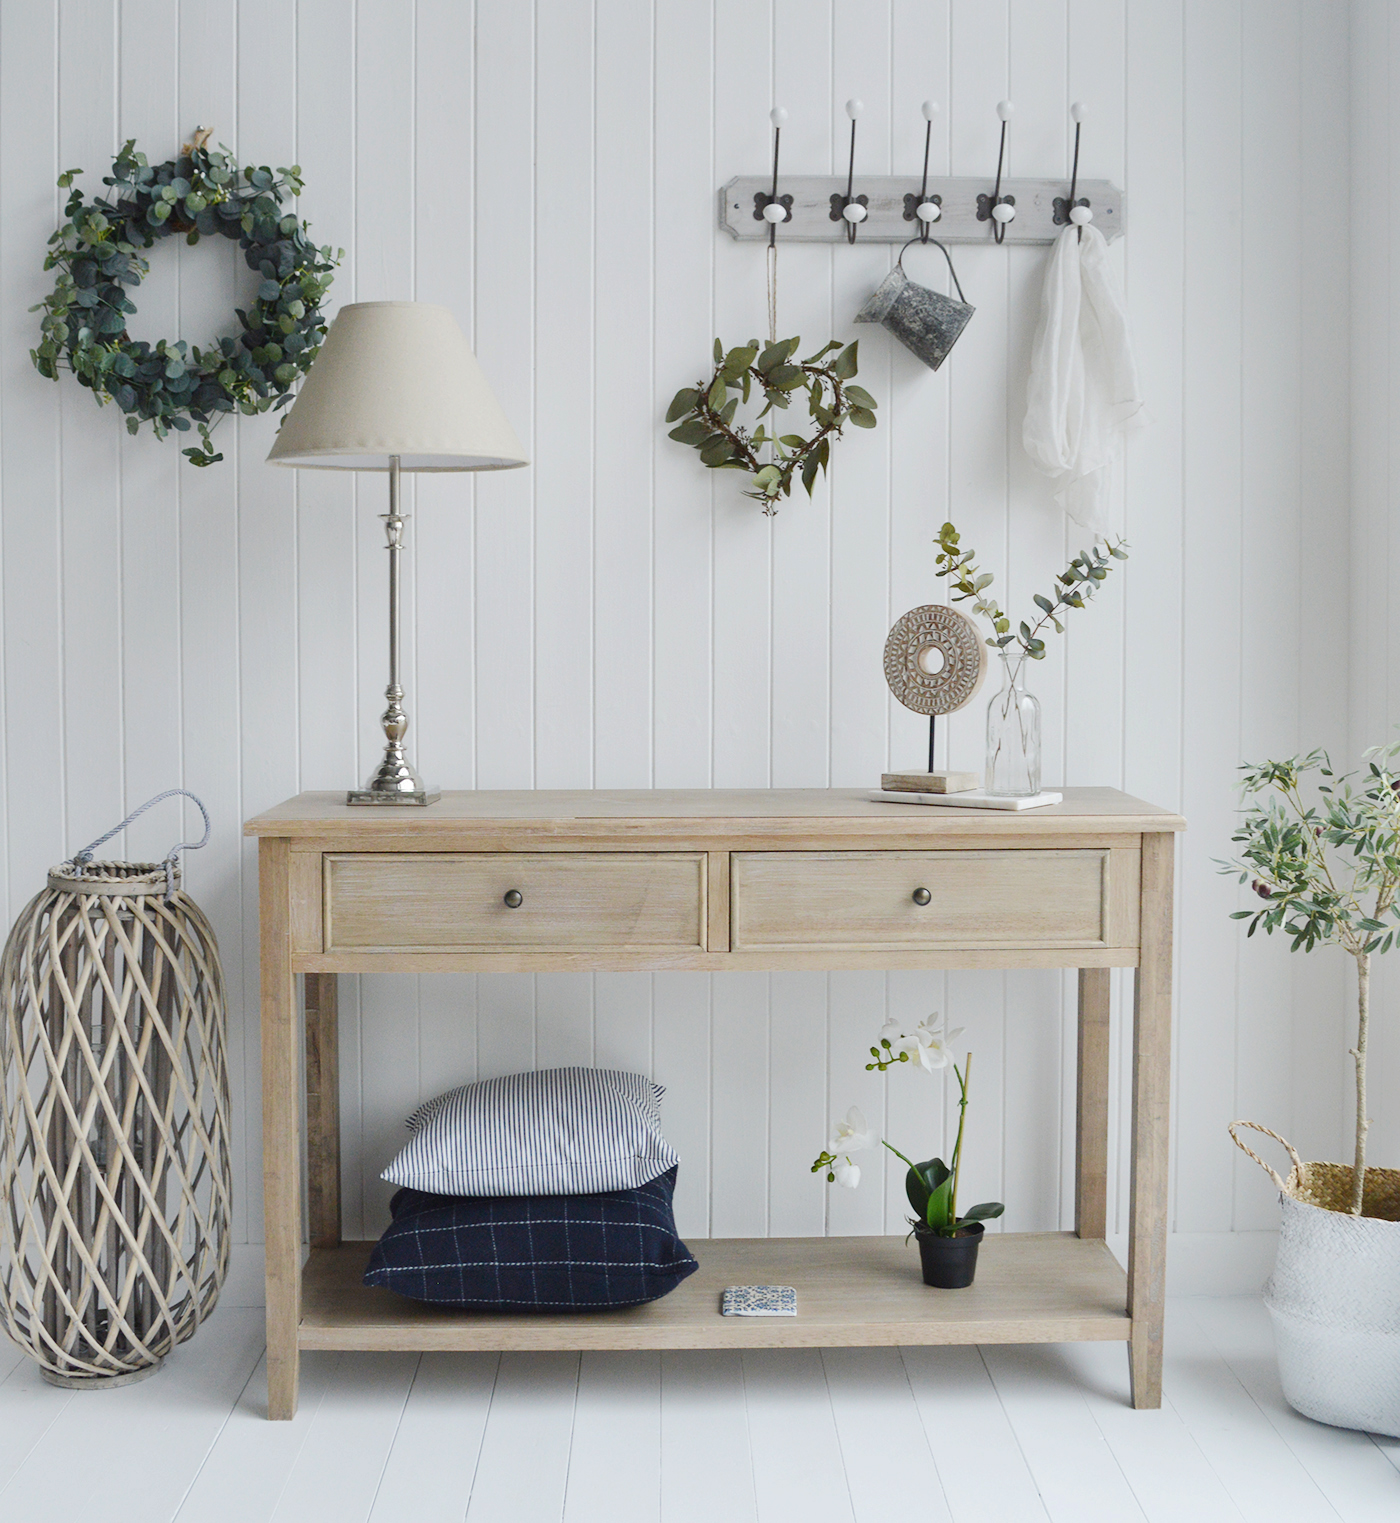 View our range of white living and Hallway room furniture in New England, Coastal and Country style home interiors from The White Lighthouse